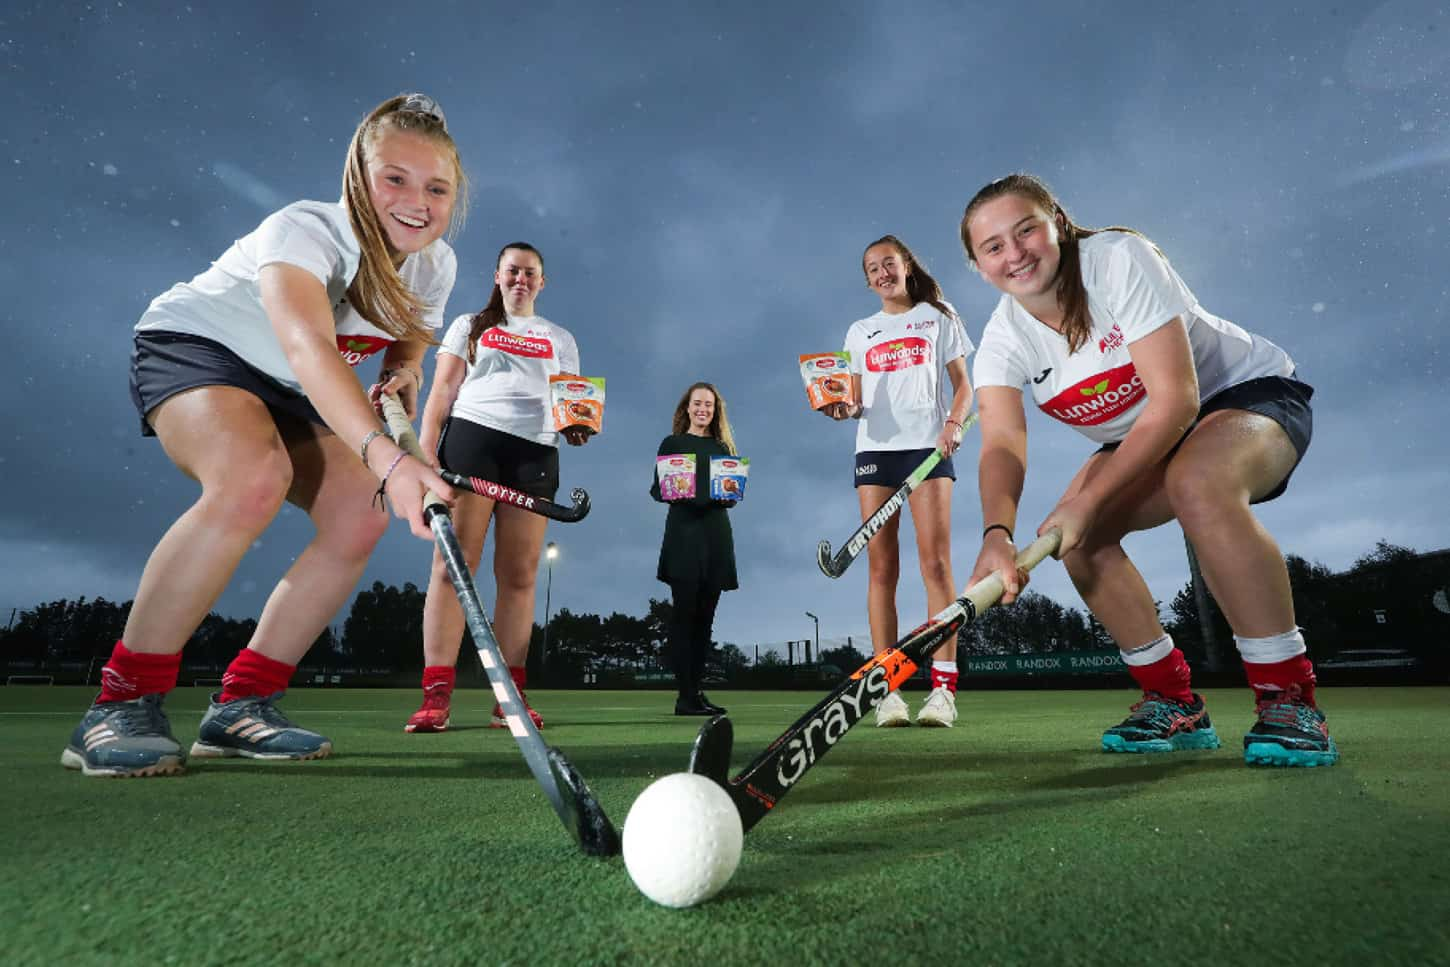 U18 Ulster Hockey players Olivia Beattie, Niamh Hogan, Emma Uprichard and Ella Armstrong are pictured with Ellen Woods, marketing executive at Linwoods.